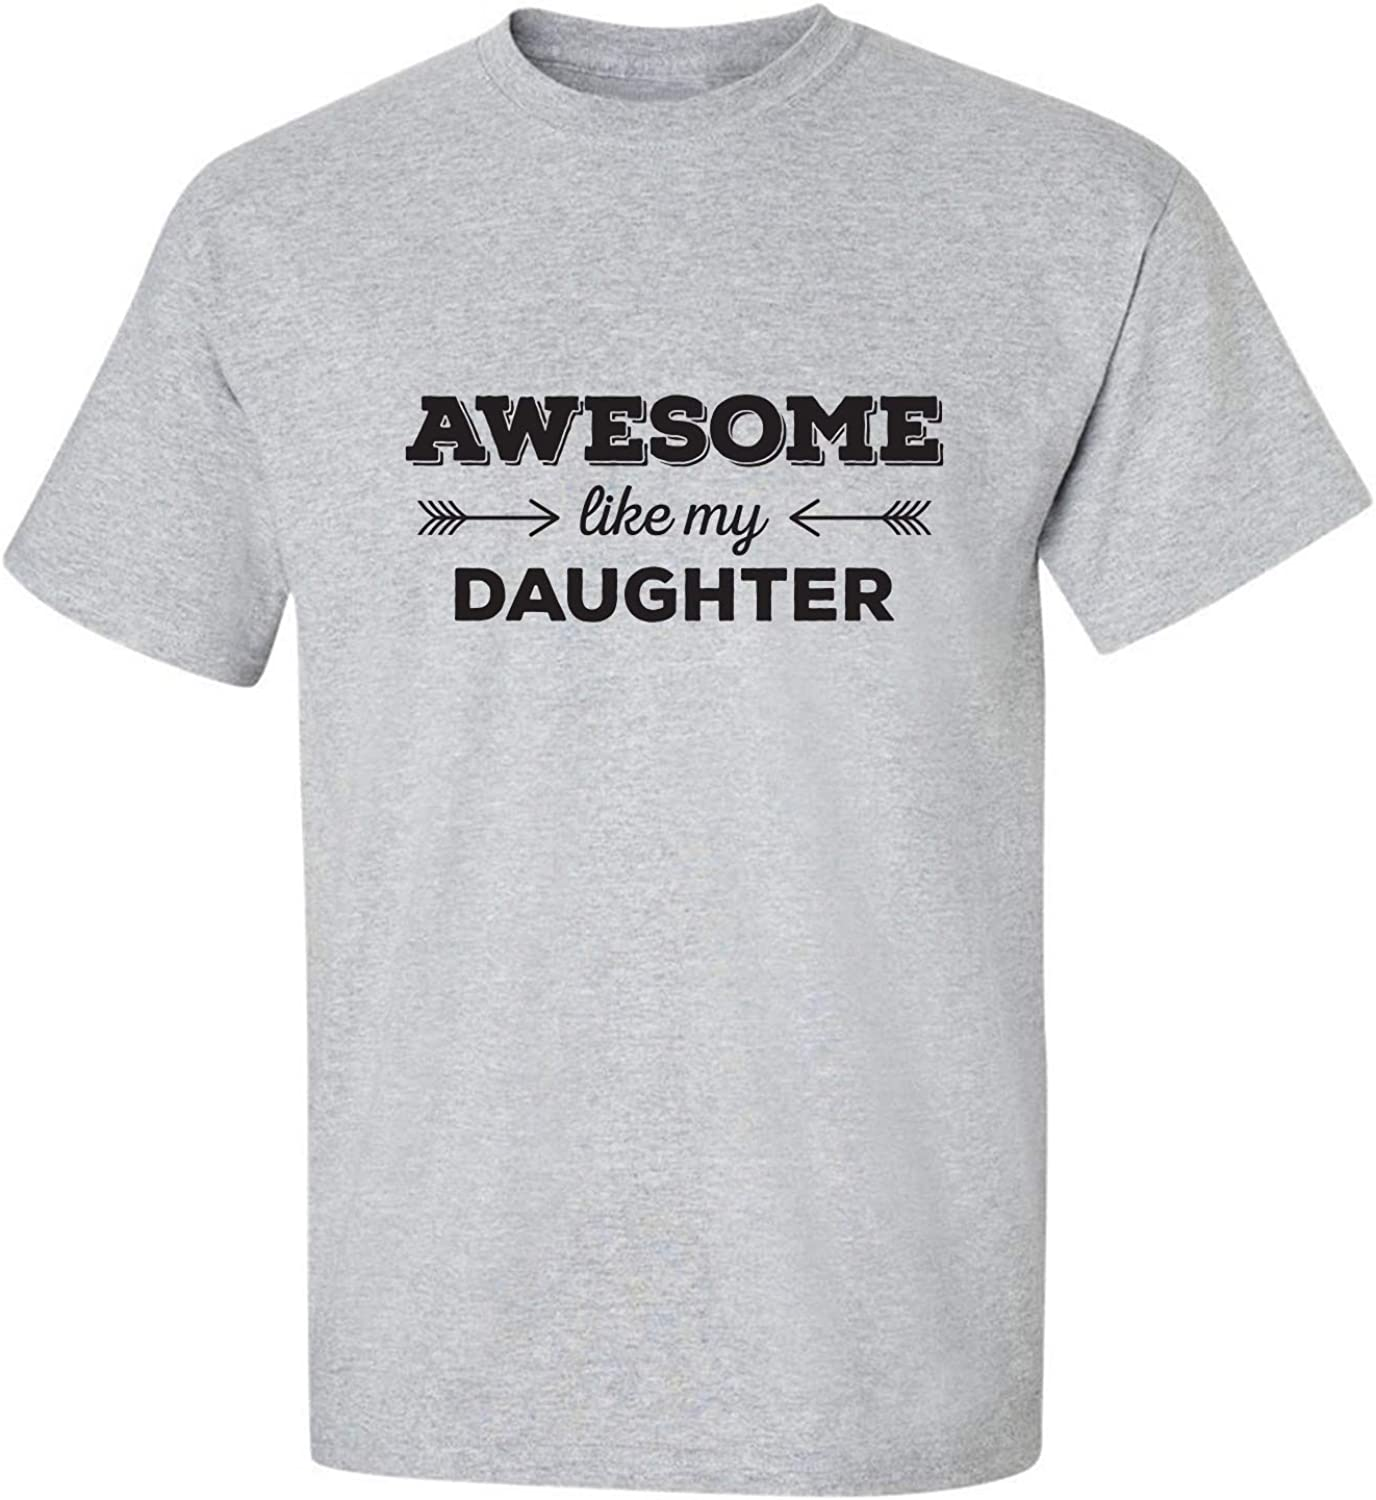 zerogravitee Awesome Like My Daughter Adult Short Sleeve T-Shirt